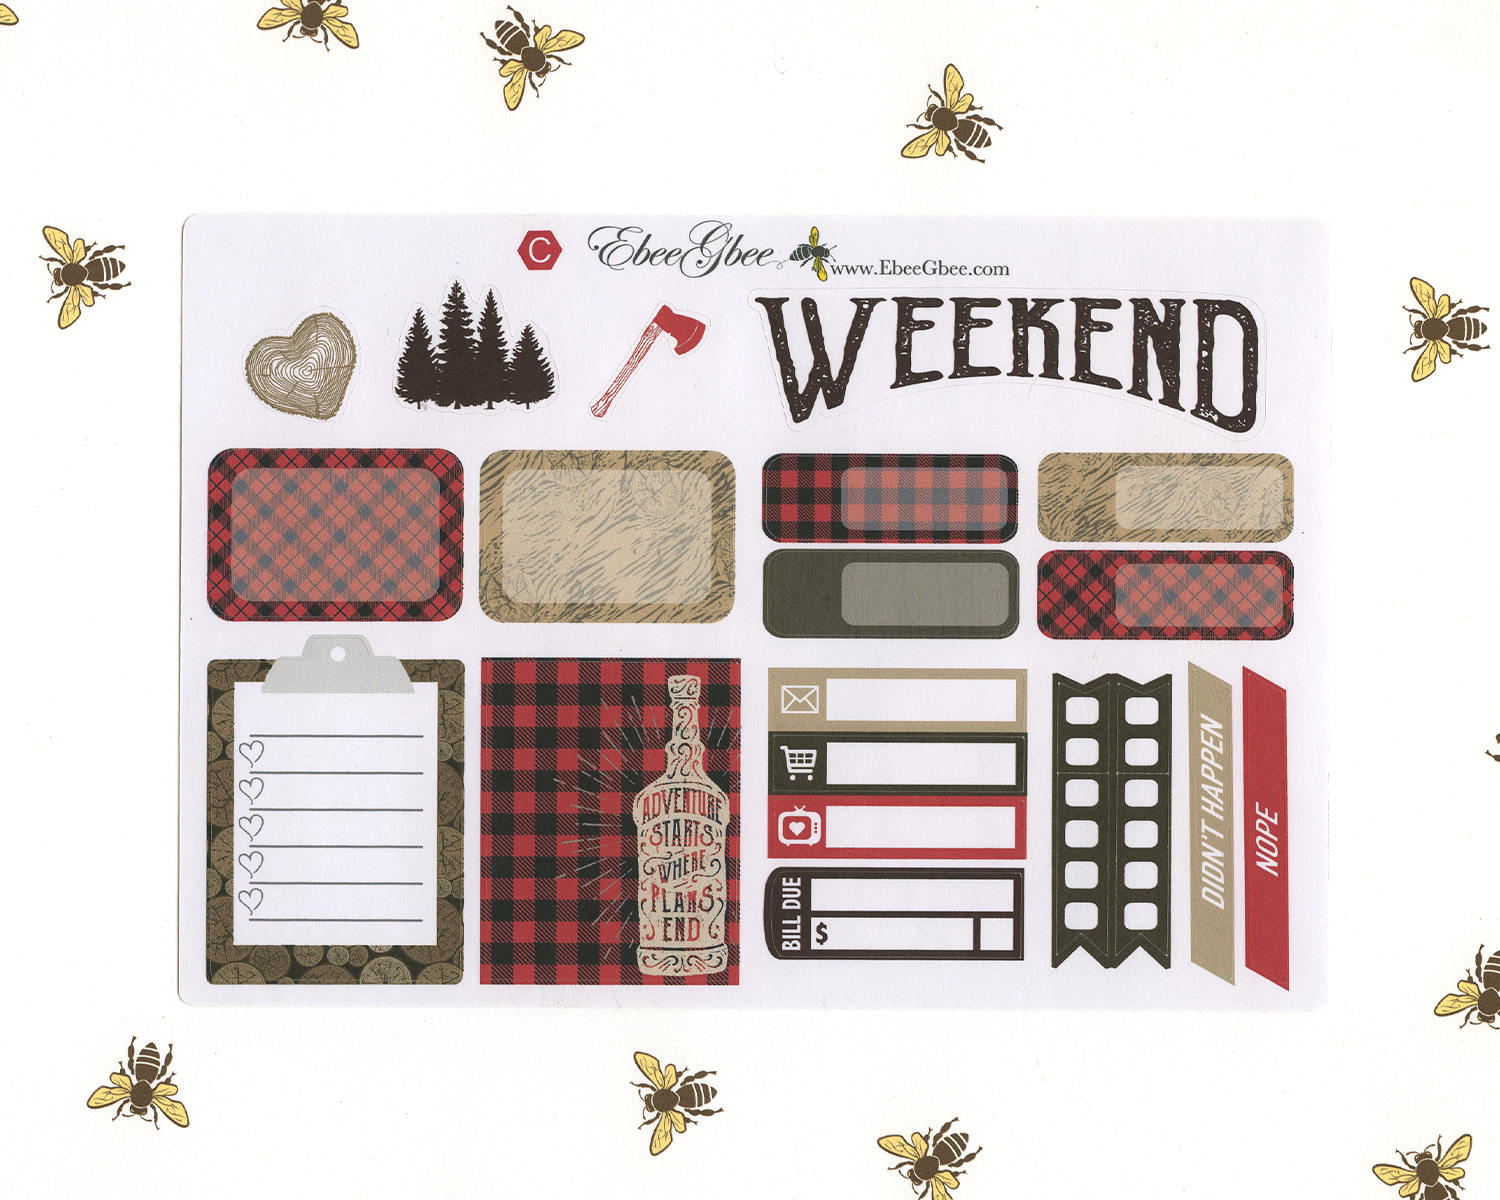 LUMBERJACK SAMPLER Weekly Planner Sticker Set |  Cherry Coffee